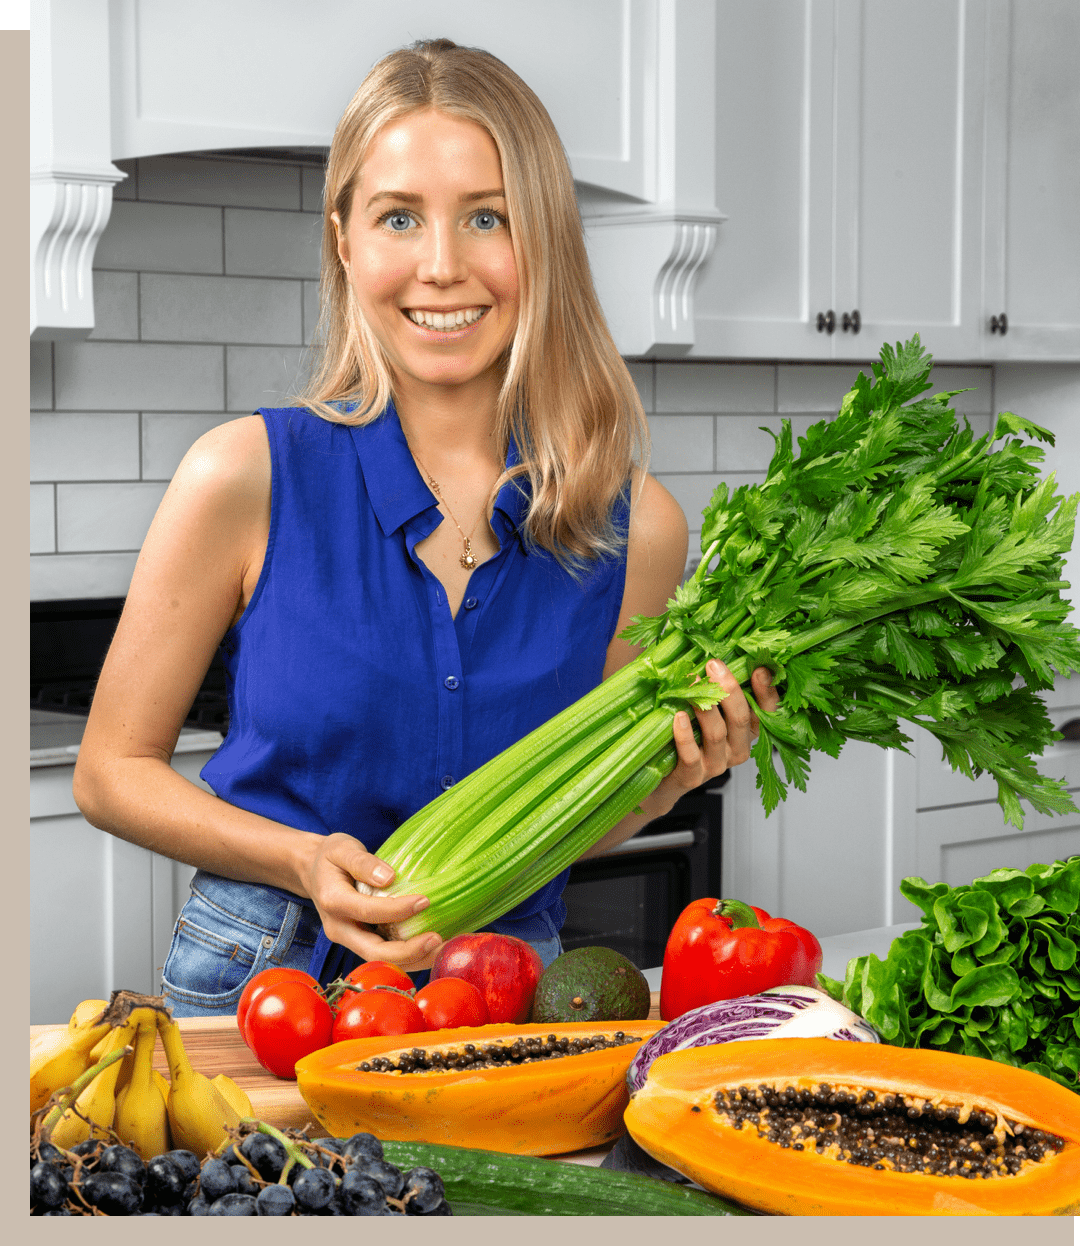 olivia budgen in kitchen with fruit and vegetables